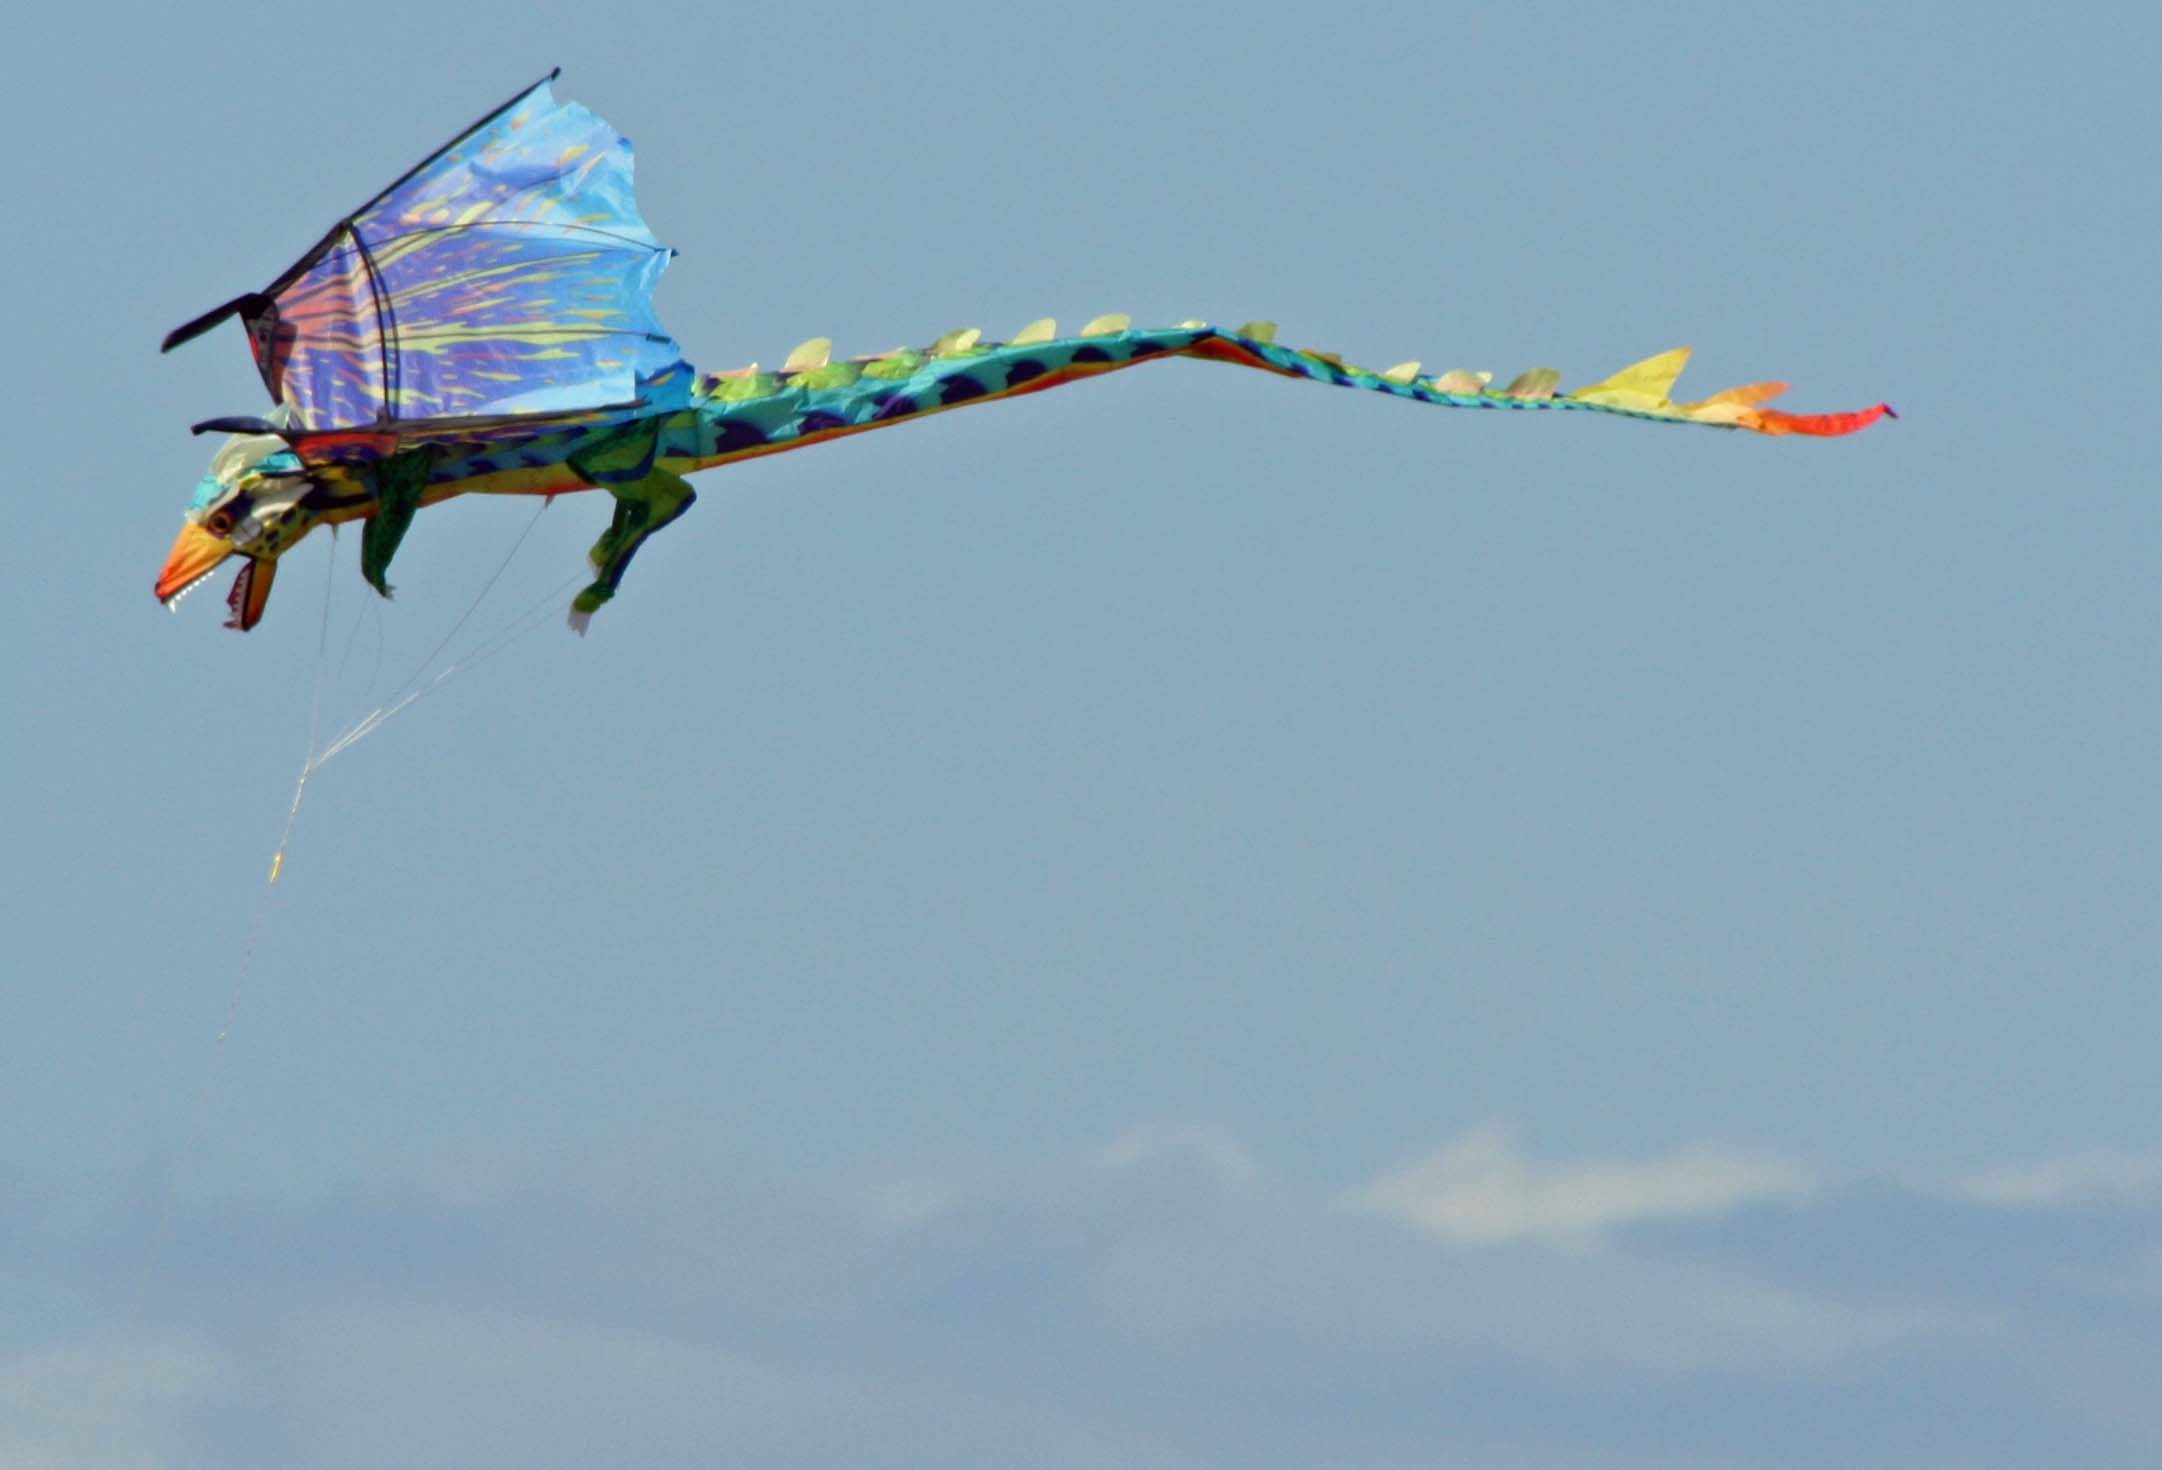 The winds at North and South beach provide excellent loft for kite flying. I enjoyed the dragon but it distracted me from my writing.